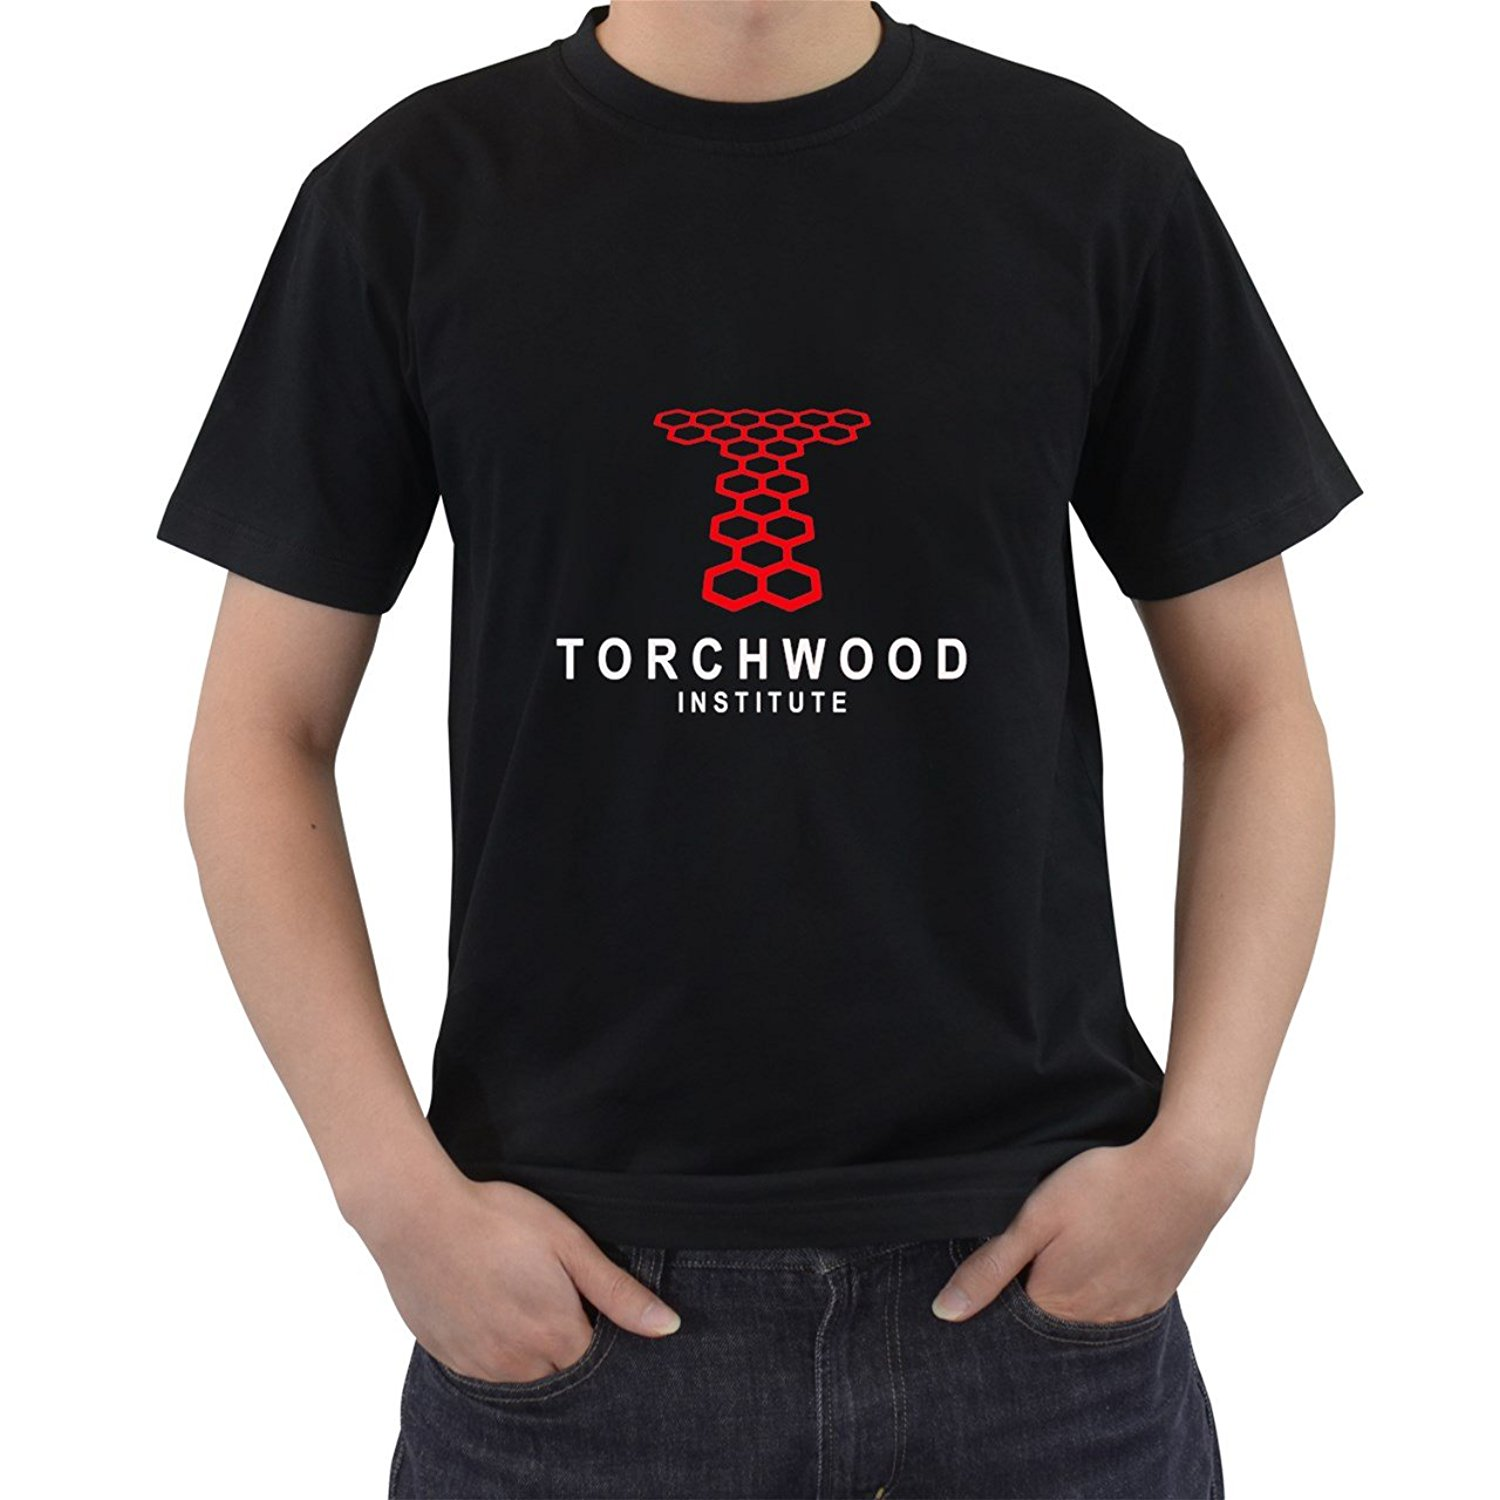 Torchwood Institute Doctor Who Linear Logo T-Shirt Short Sleeve S M L XL 2XL 3XL O Neck T Shirts Male Low Price Steampunk